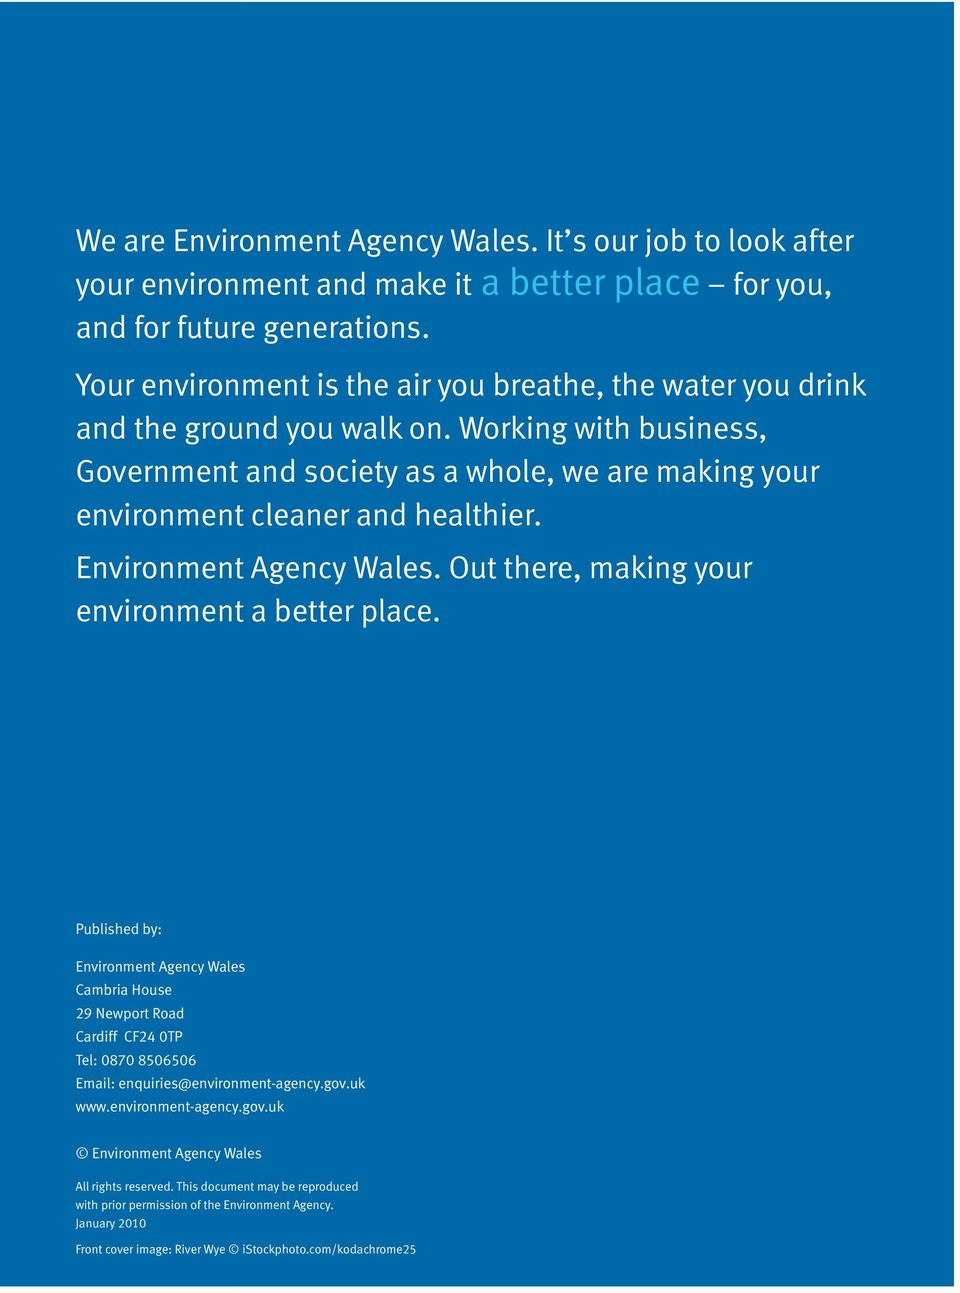 Working with business, Government and society as a whole, we are making your environment cleaner and healthier. Environment Agency Wales. Out there, making your environment a better place.